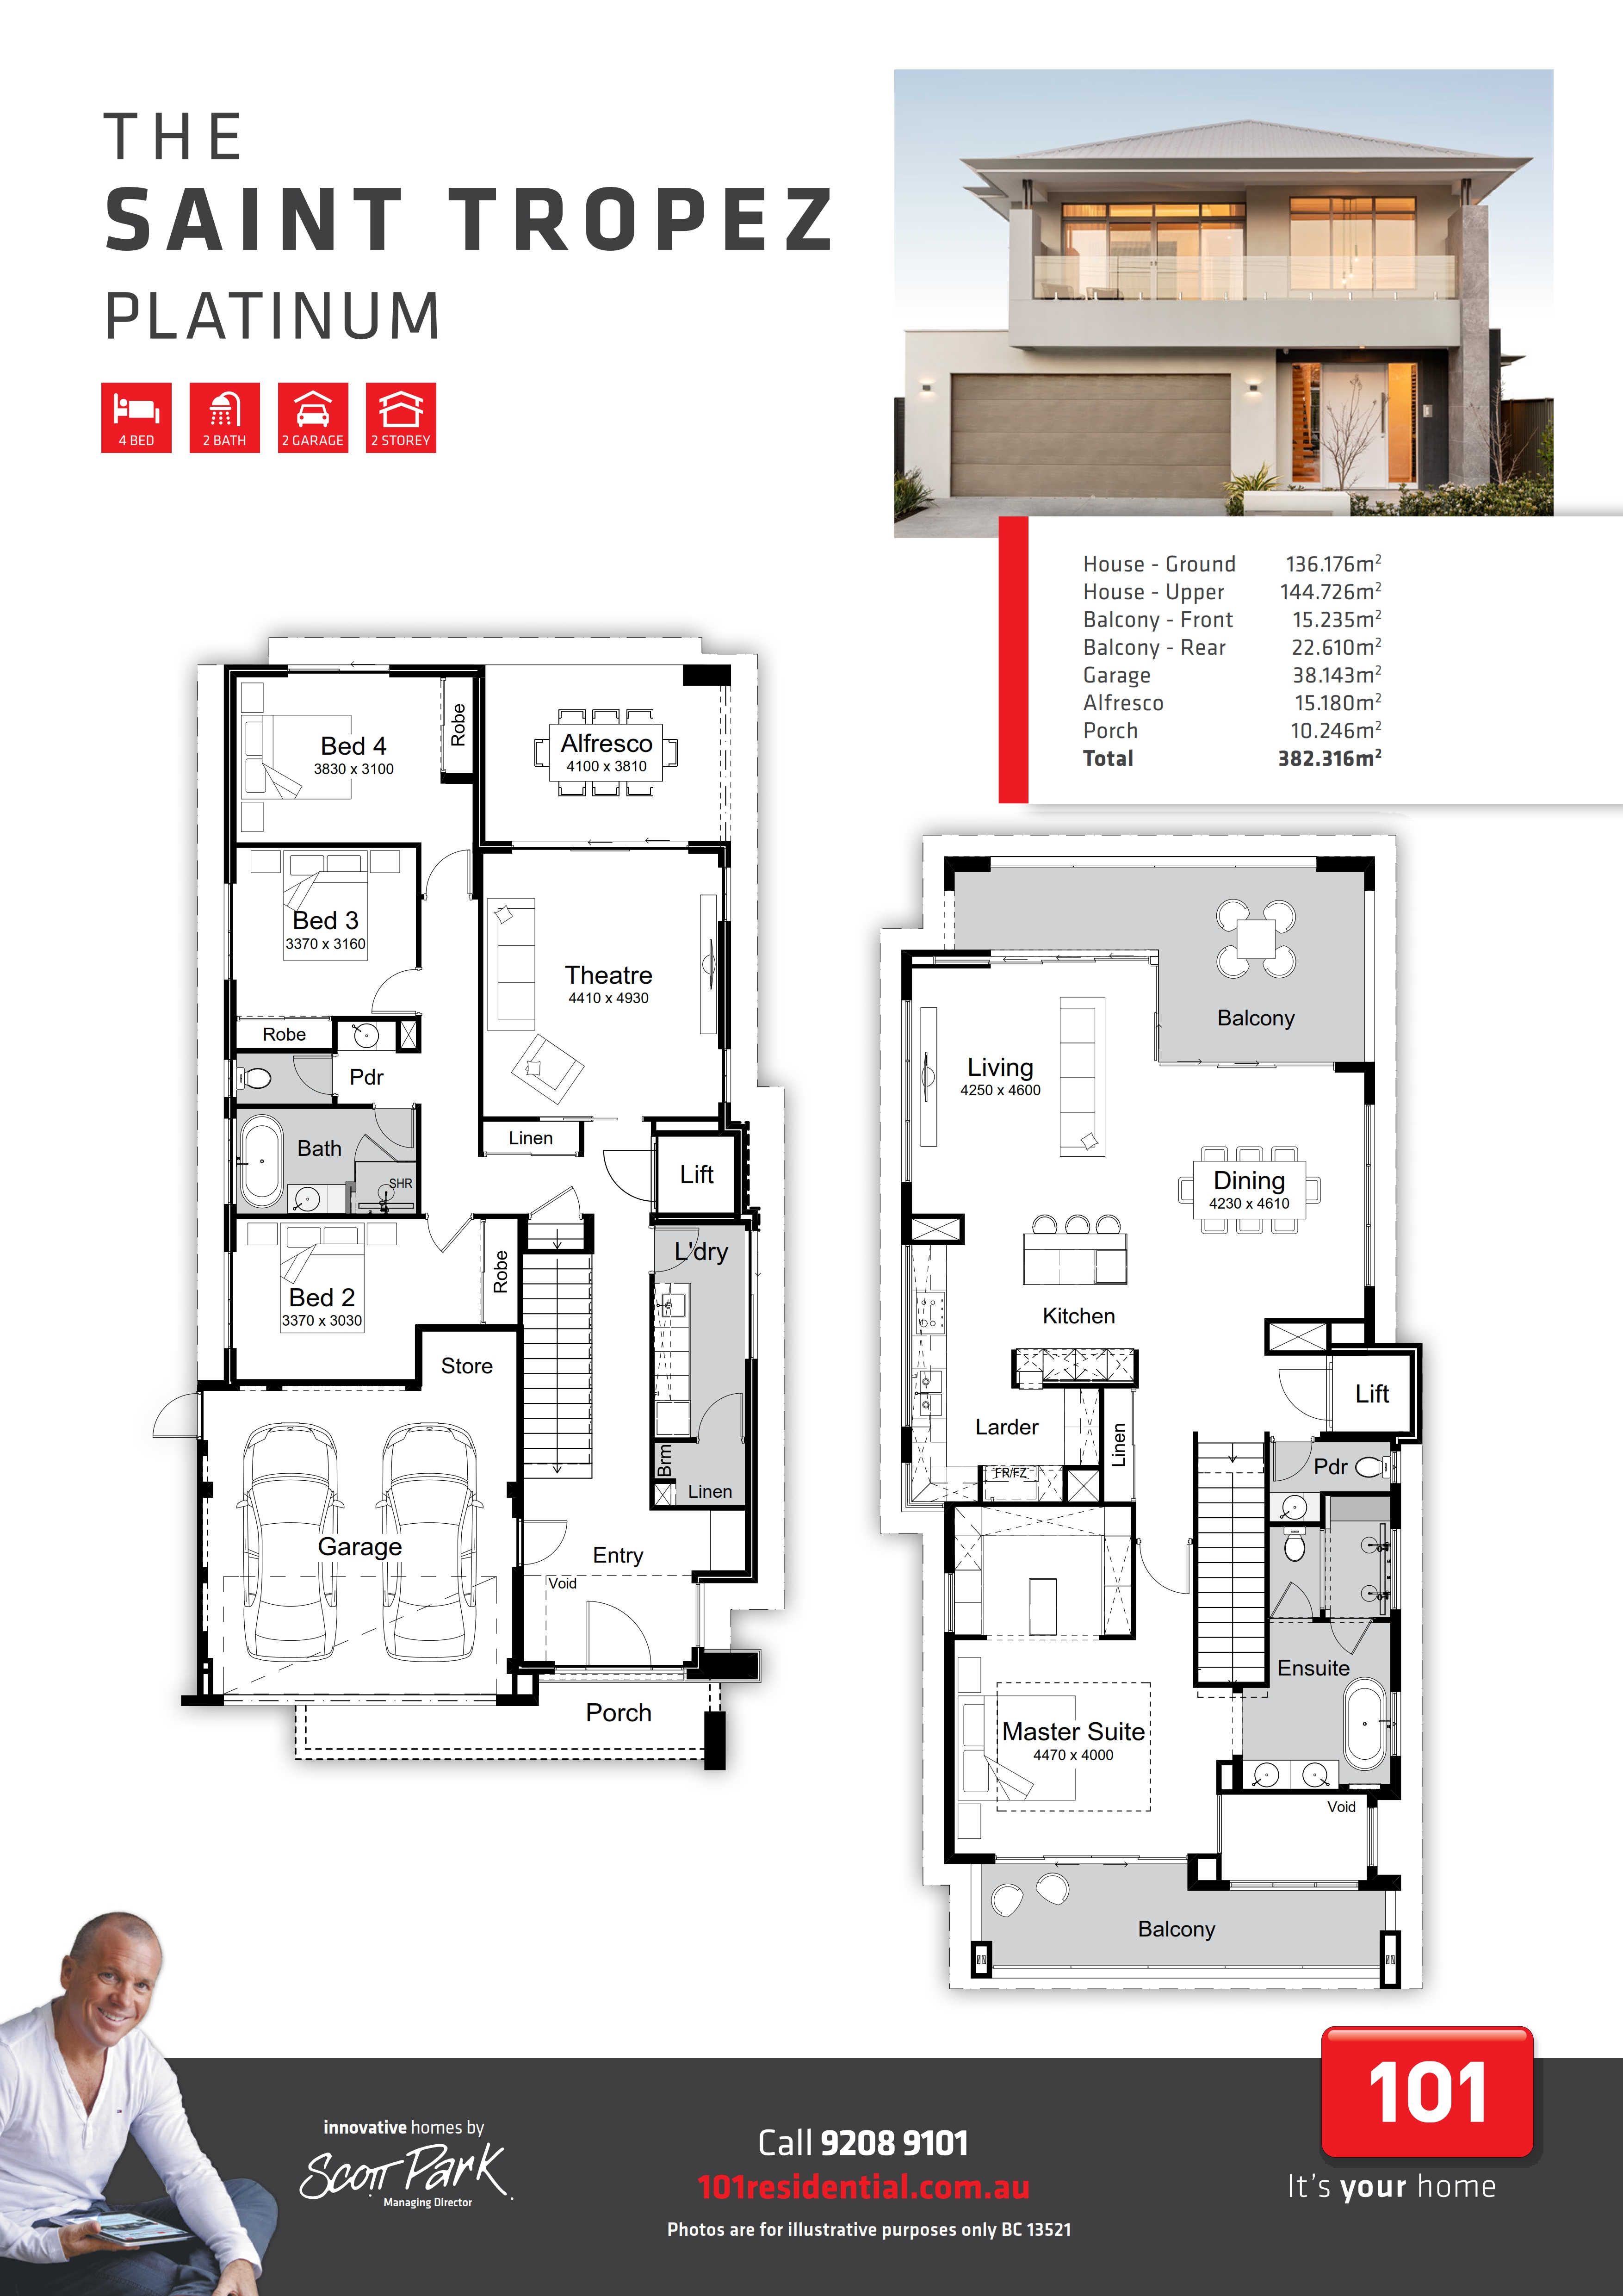 101 A3 Floor Plan - Saint Tropez Platinum WEB_001